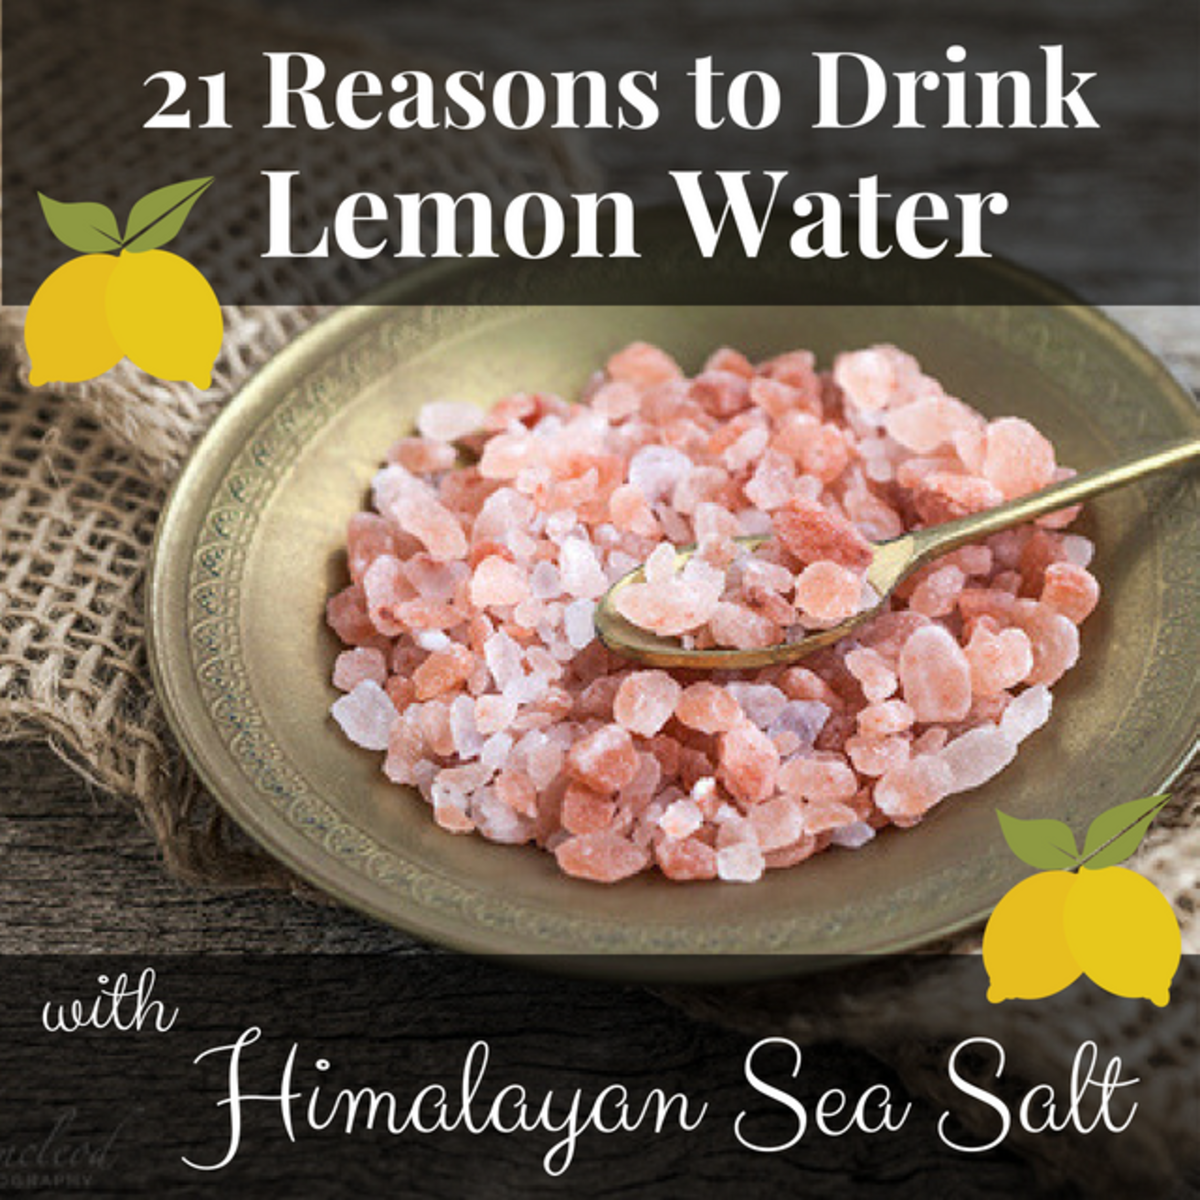 21 Reasons to Drink Lemon Water With Himalayan Sea Salt